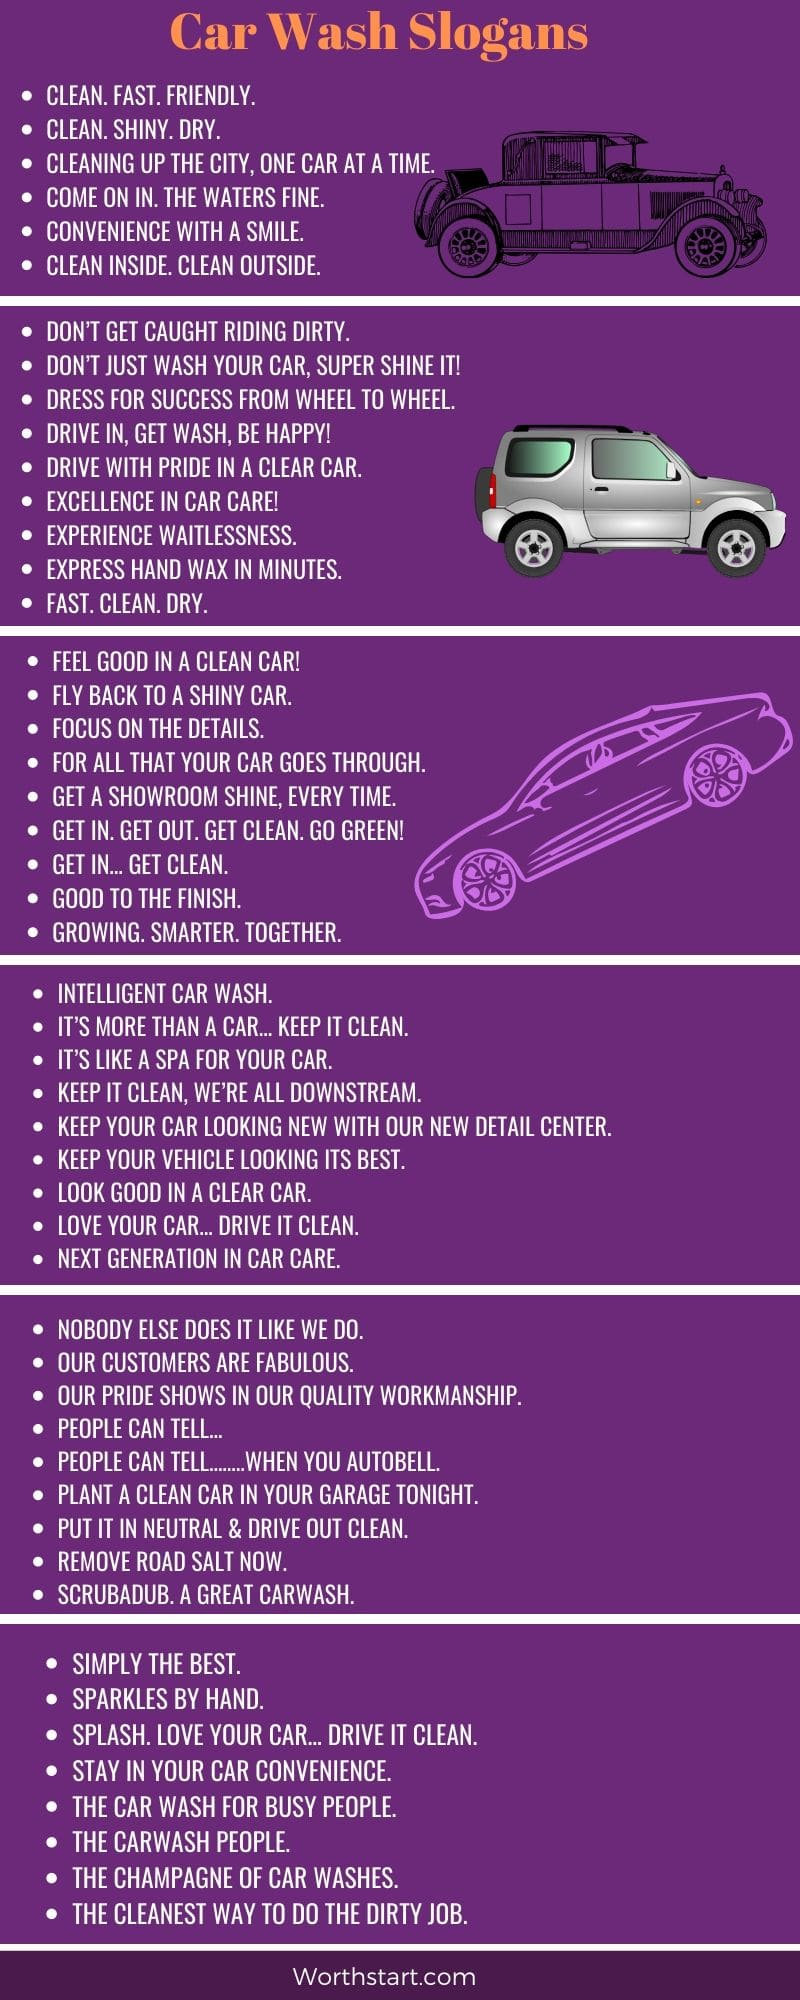 200 Car Wash Slogans Ideas And One Liners List